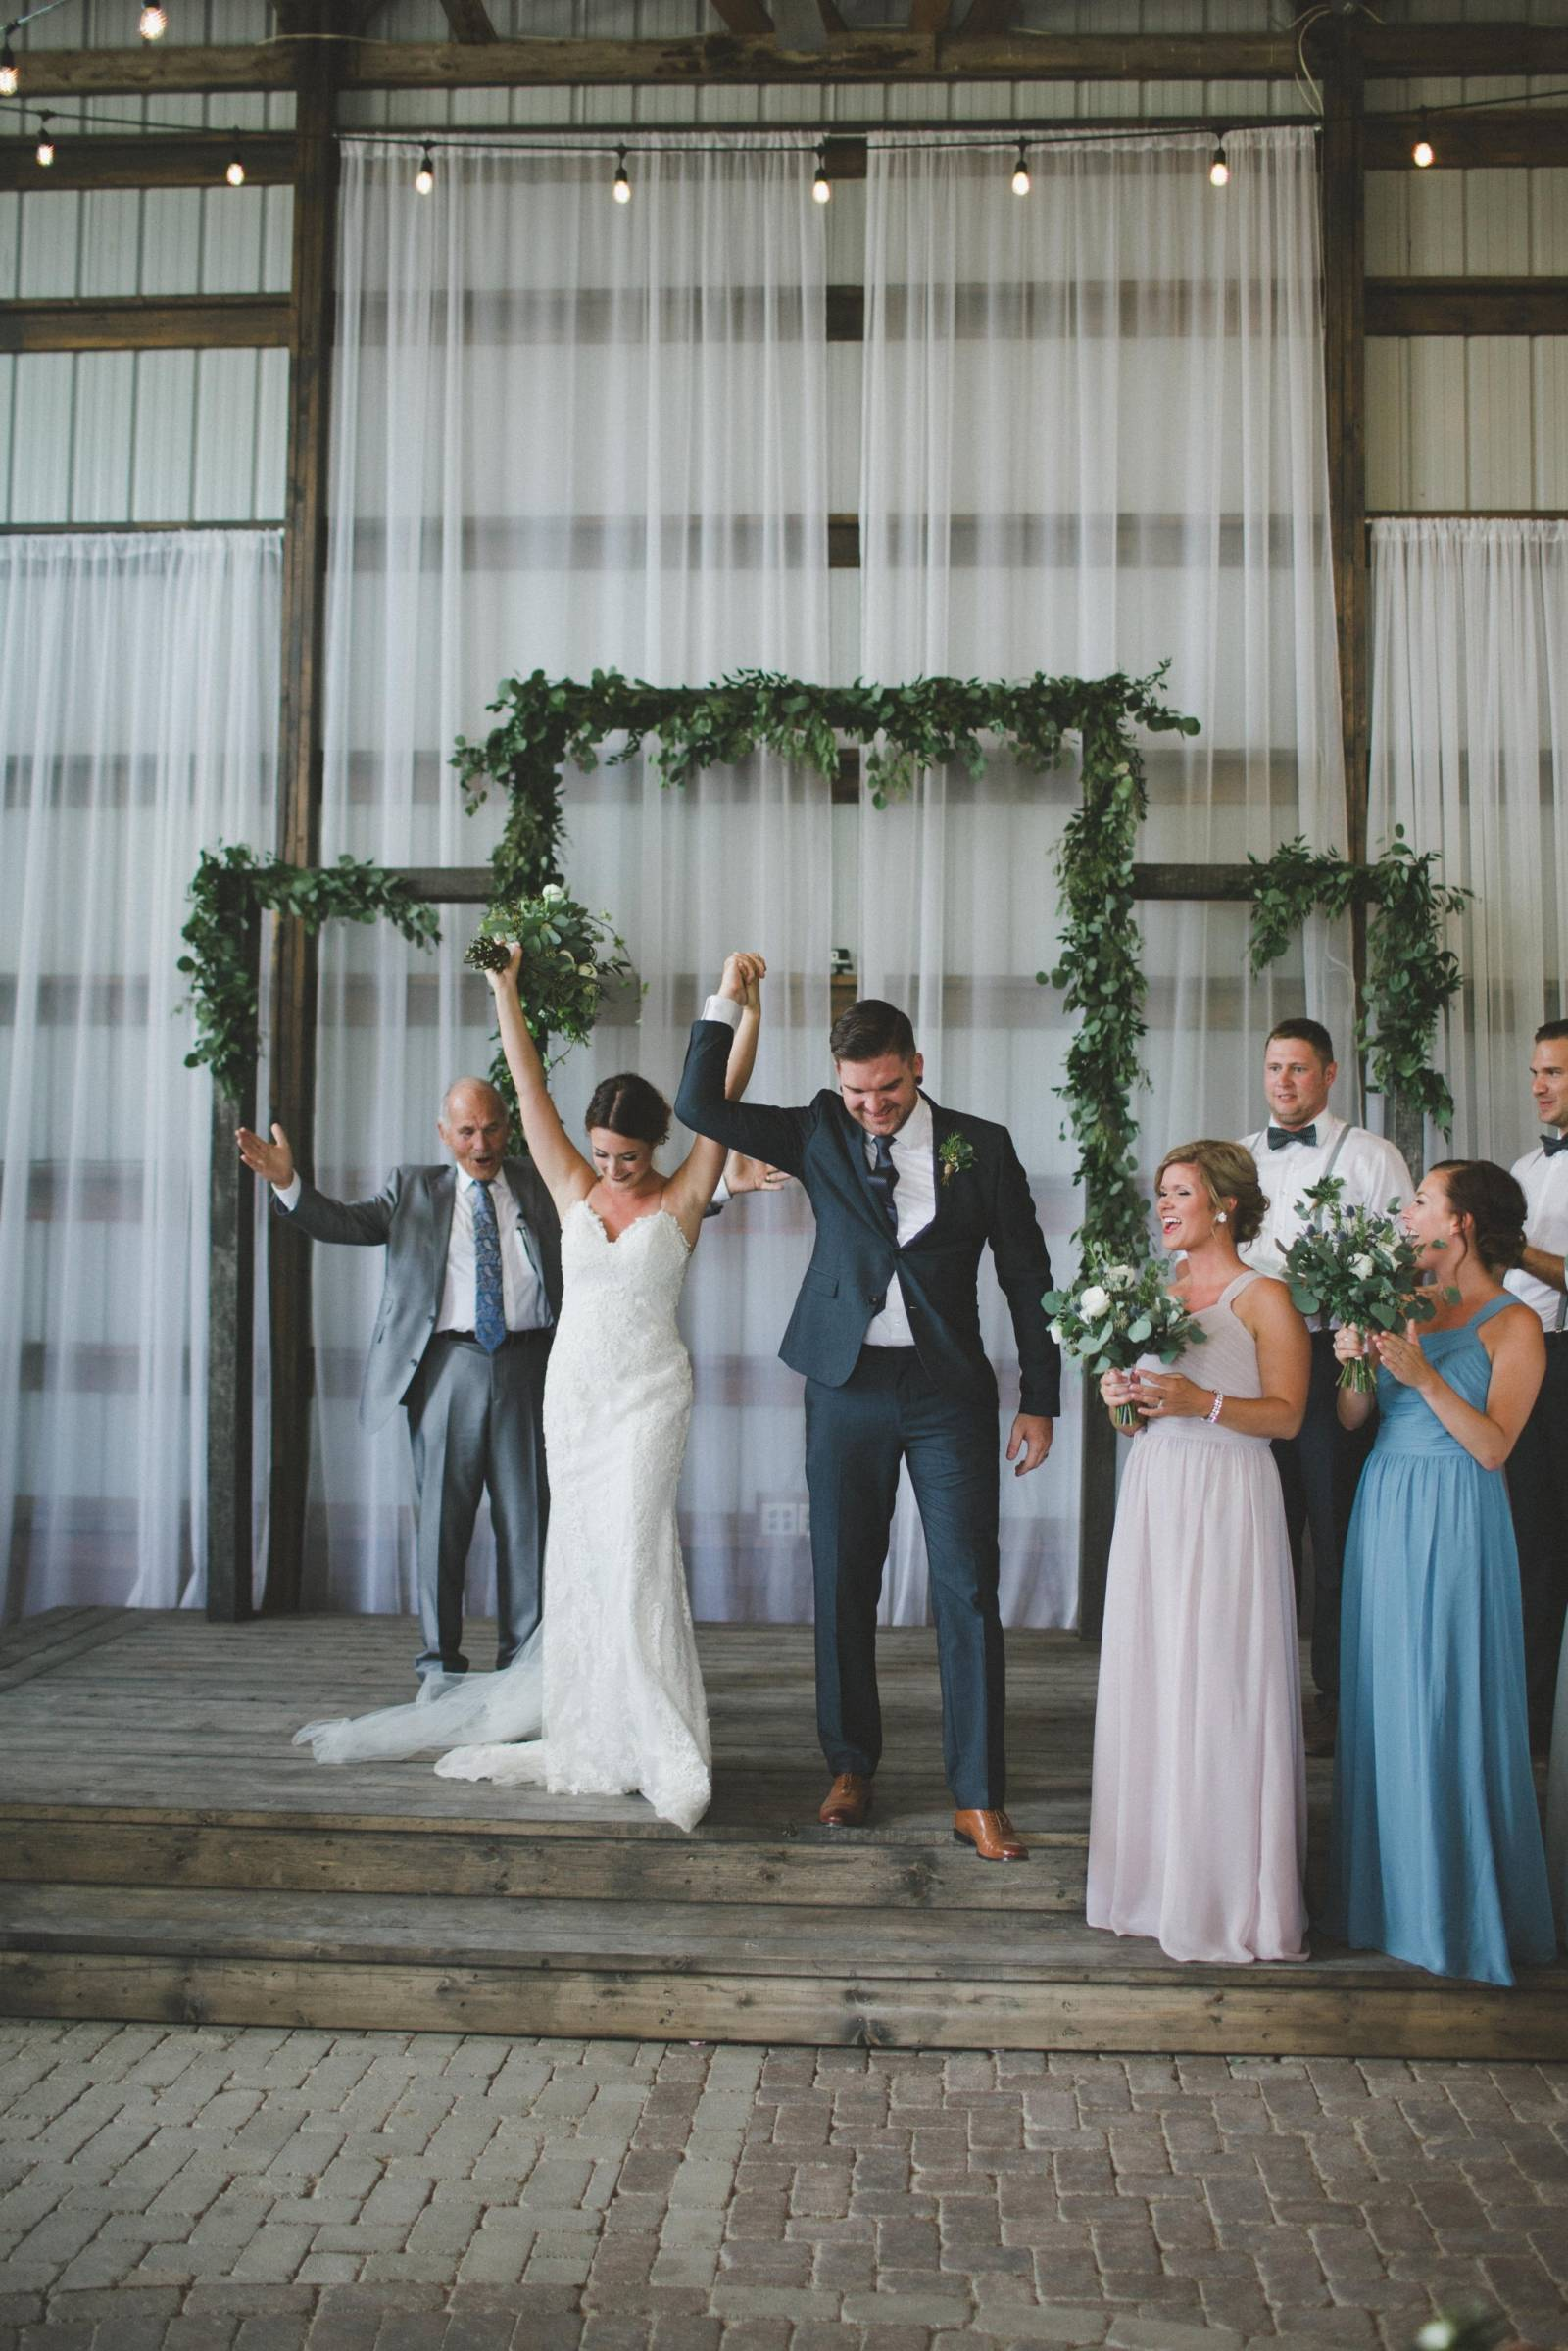 The Rustic Wedding – Part I images